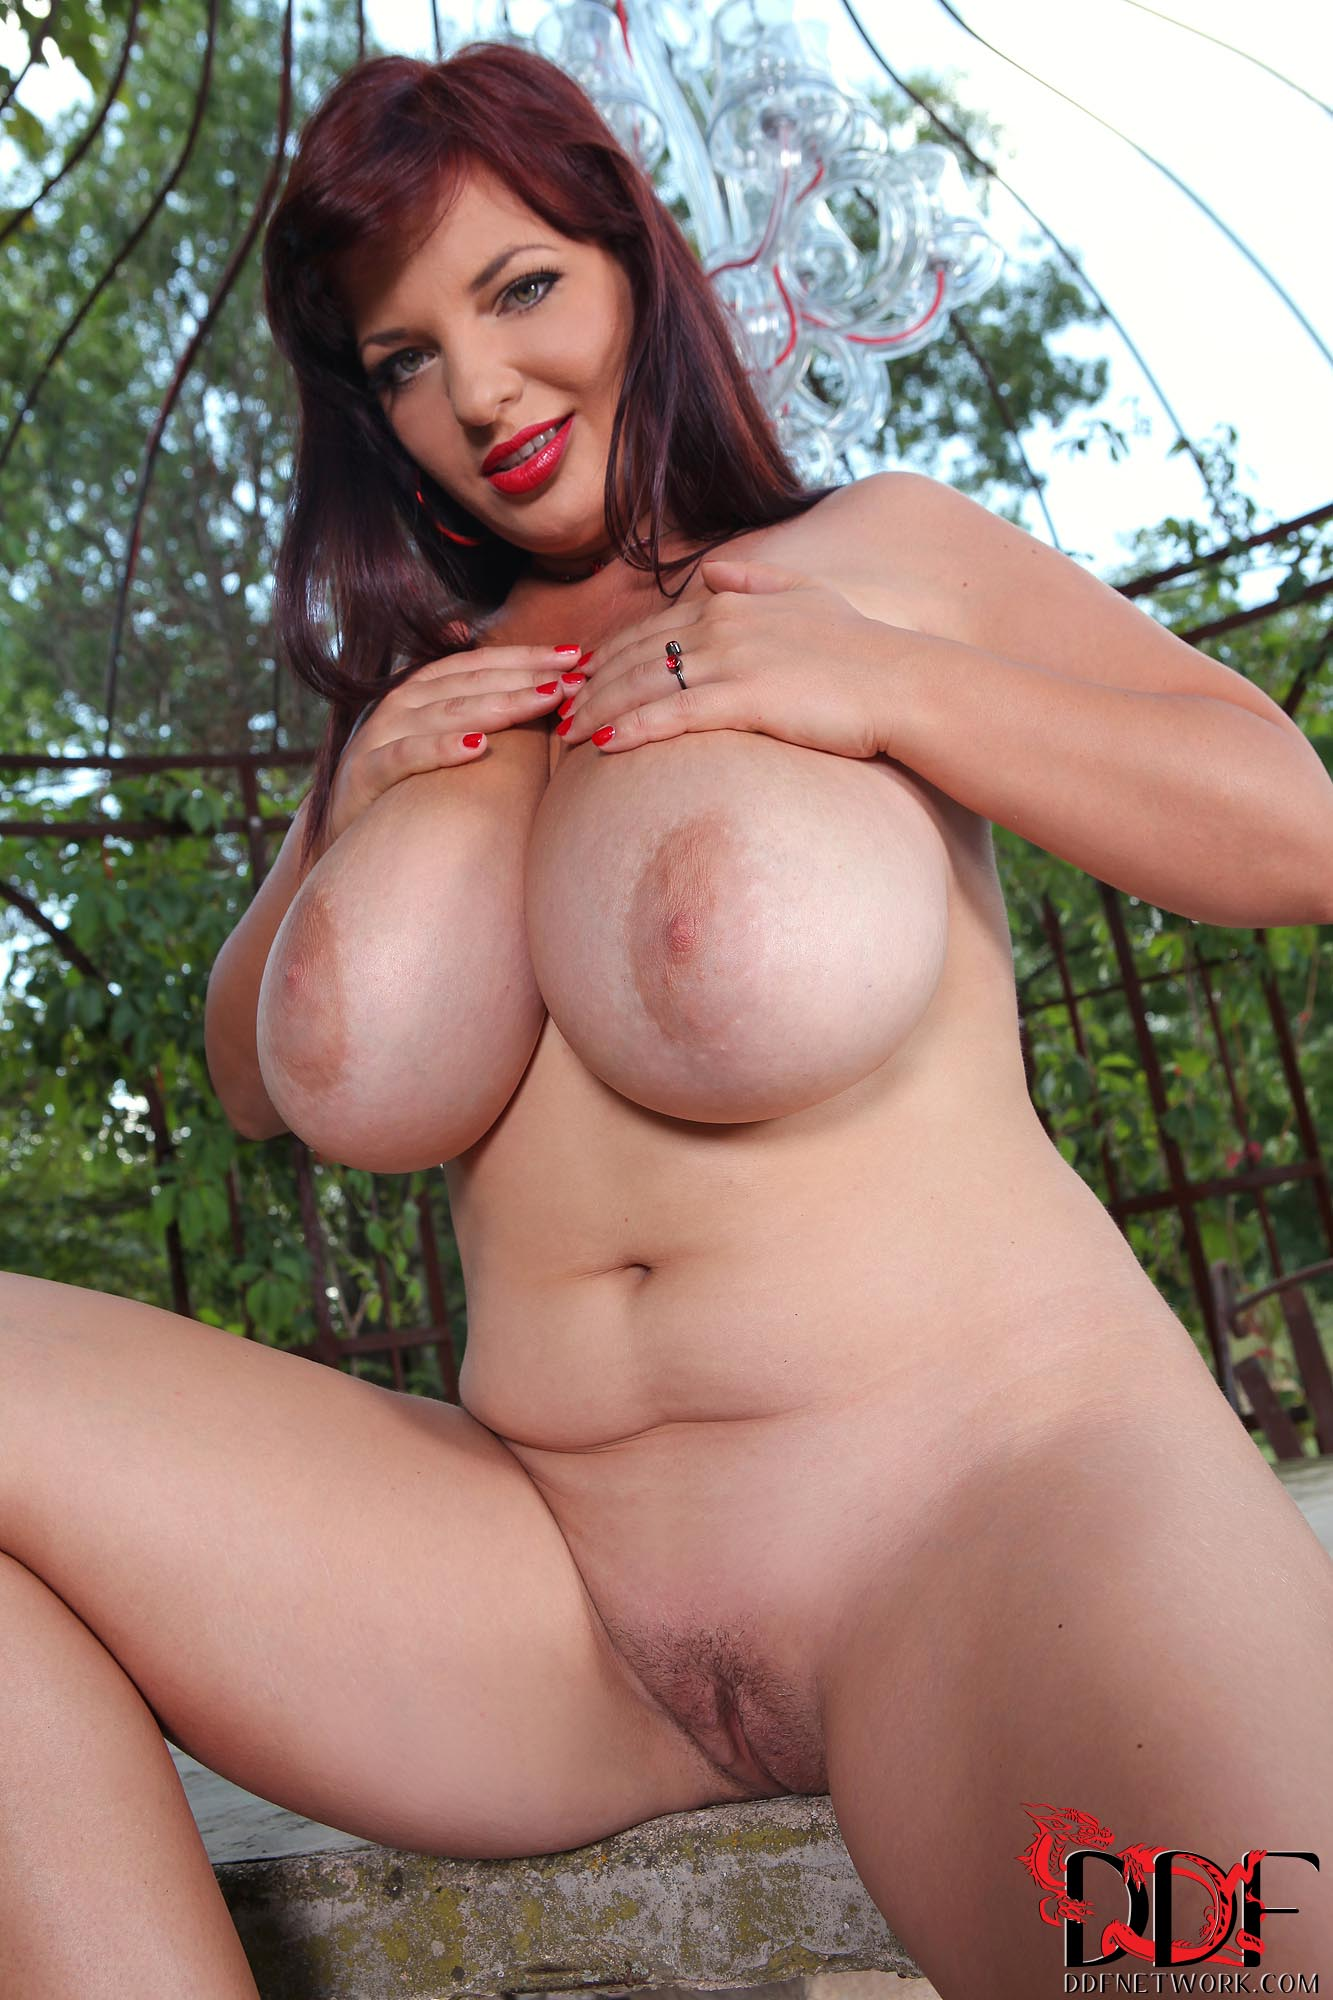 Rebecca Bliss Porn Joanna Bliss Nude Pictures Rating Jpg 300x450